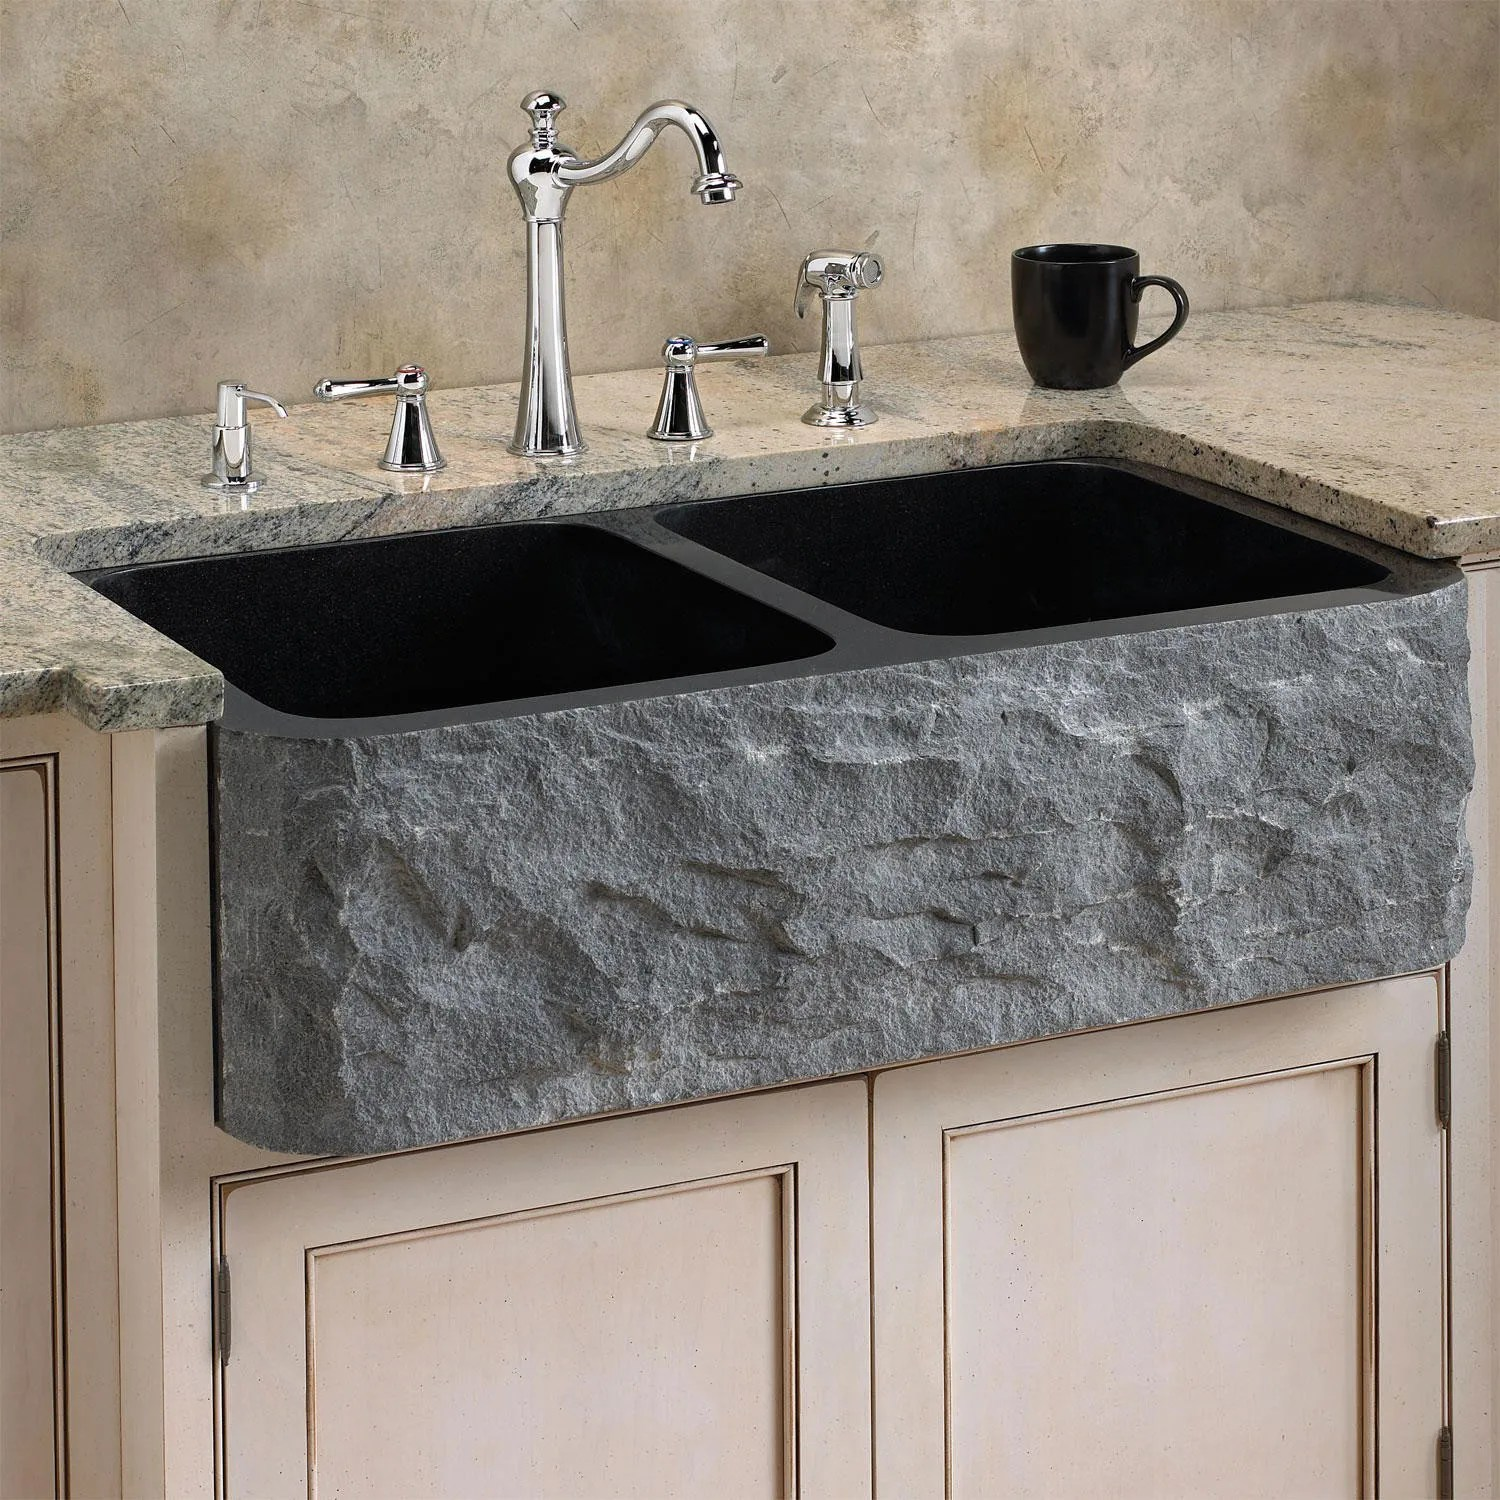 Polished Granite Farmhouse Sink - Chiseled Front - Kitchen on Farmhouse Kitchen Farmhouse Granite Countertops  id=79691